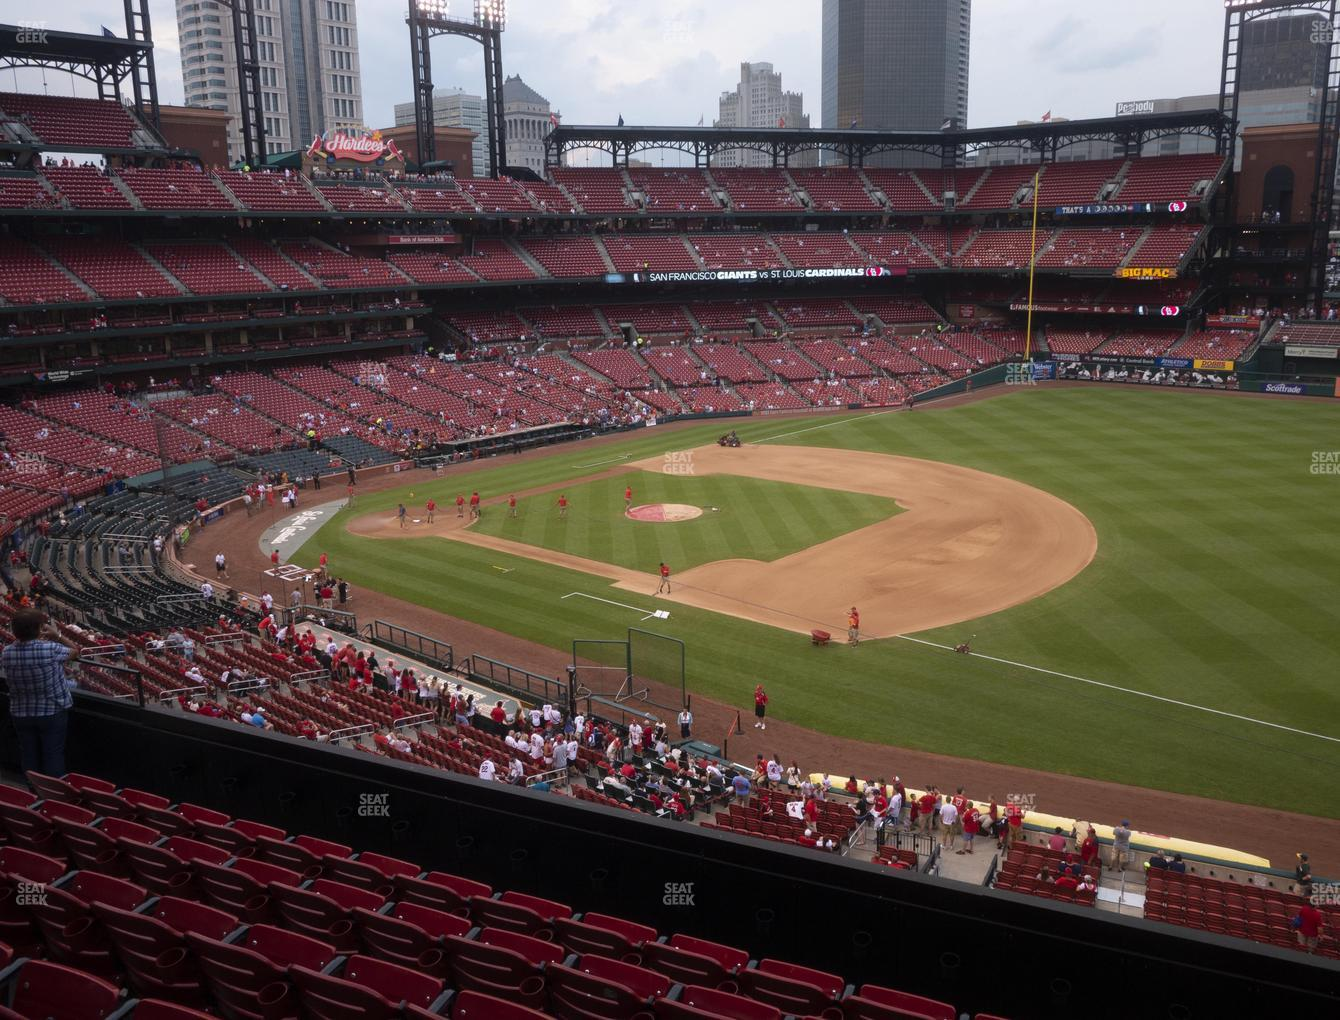 St. Louis Cardinals at Busch Stadium First Base Loge 239 View